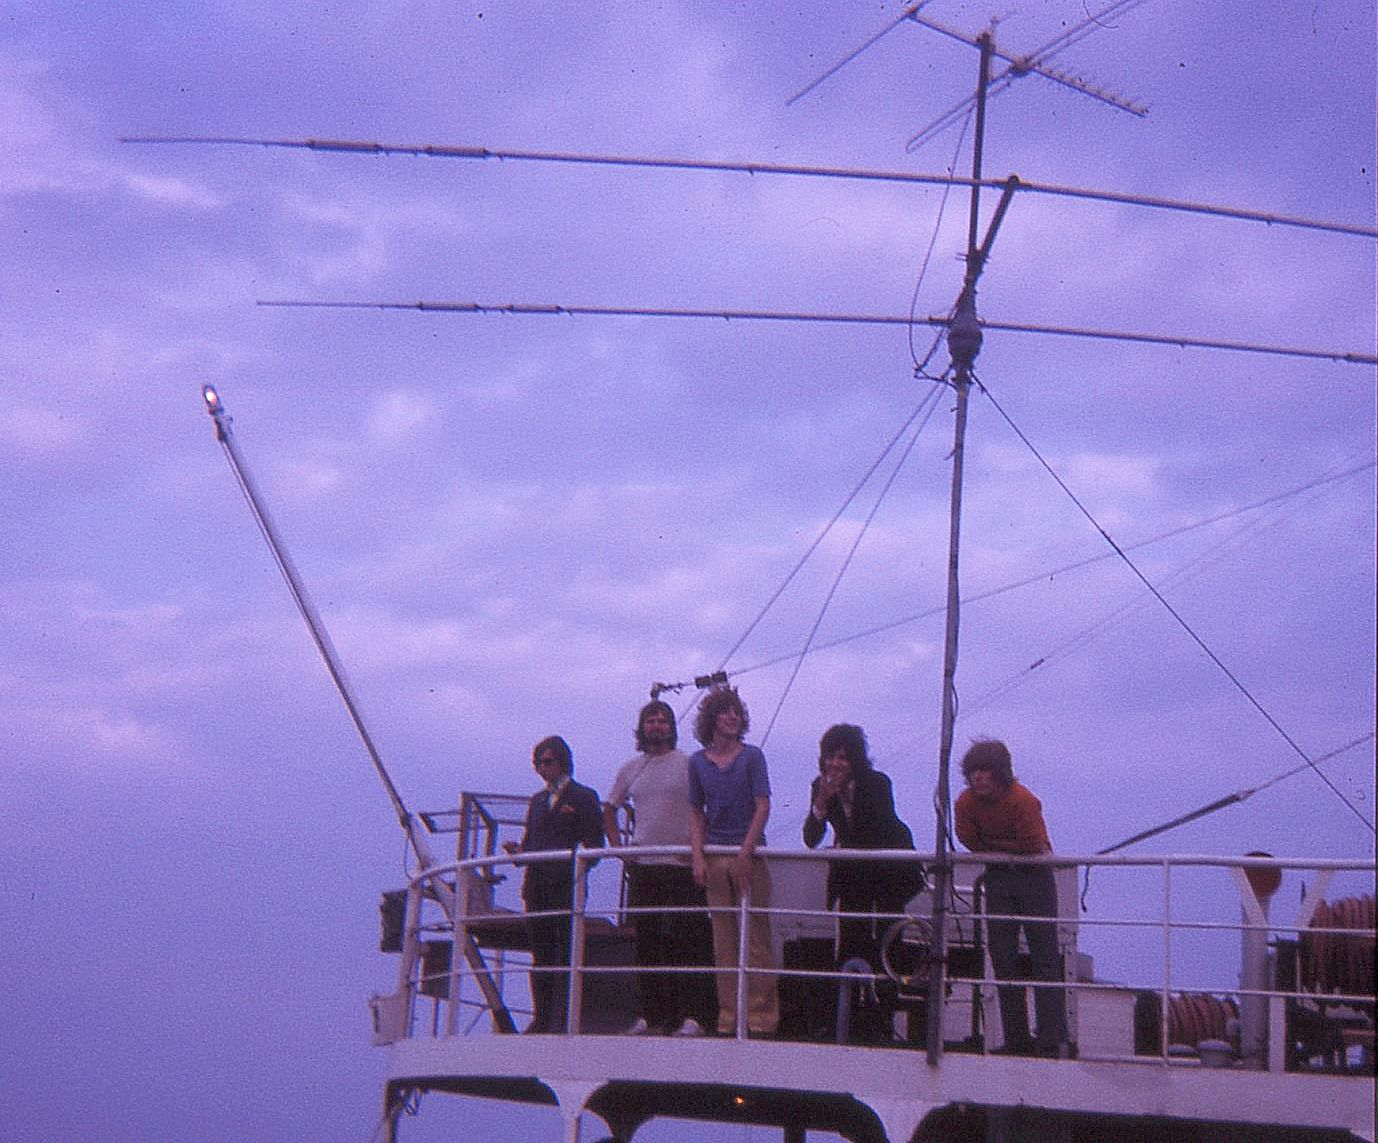 DJs_aboard_Radio_Northsea_21.8.70